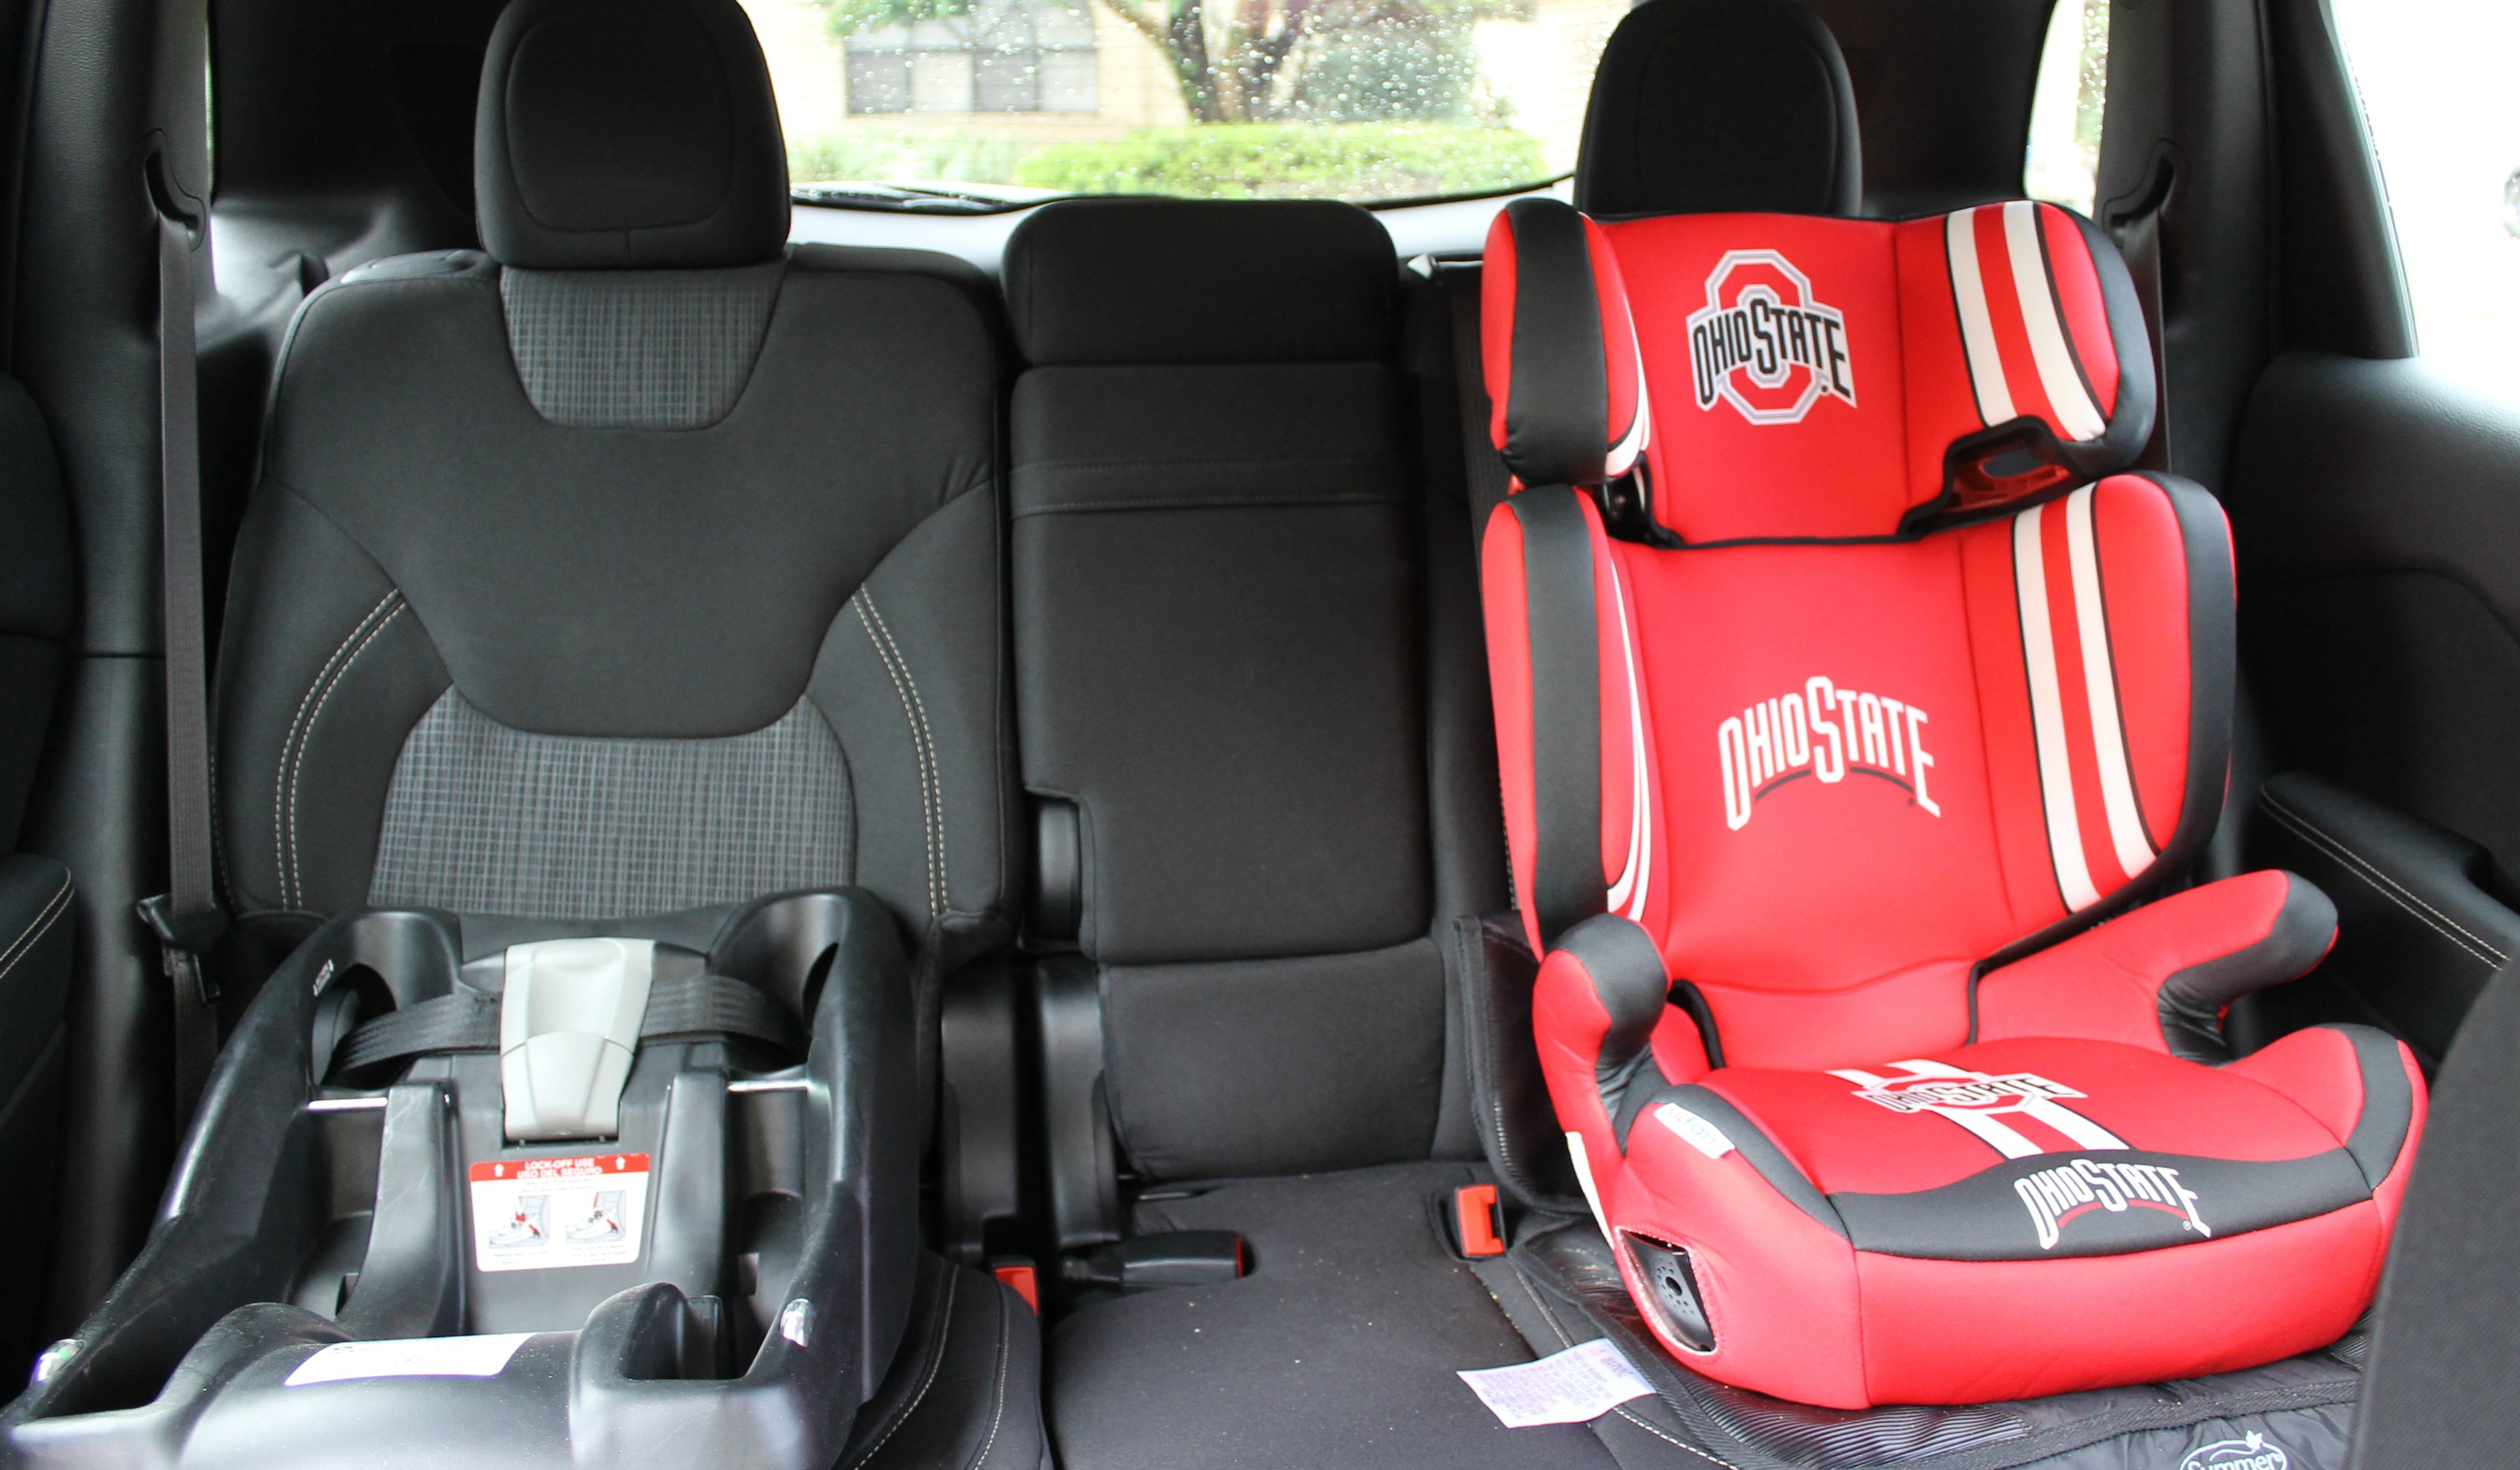 Lil Fan Ohio State Booster Seat For Kids